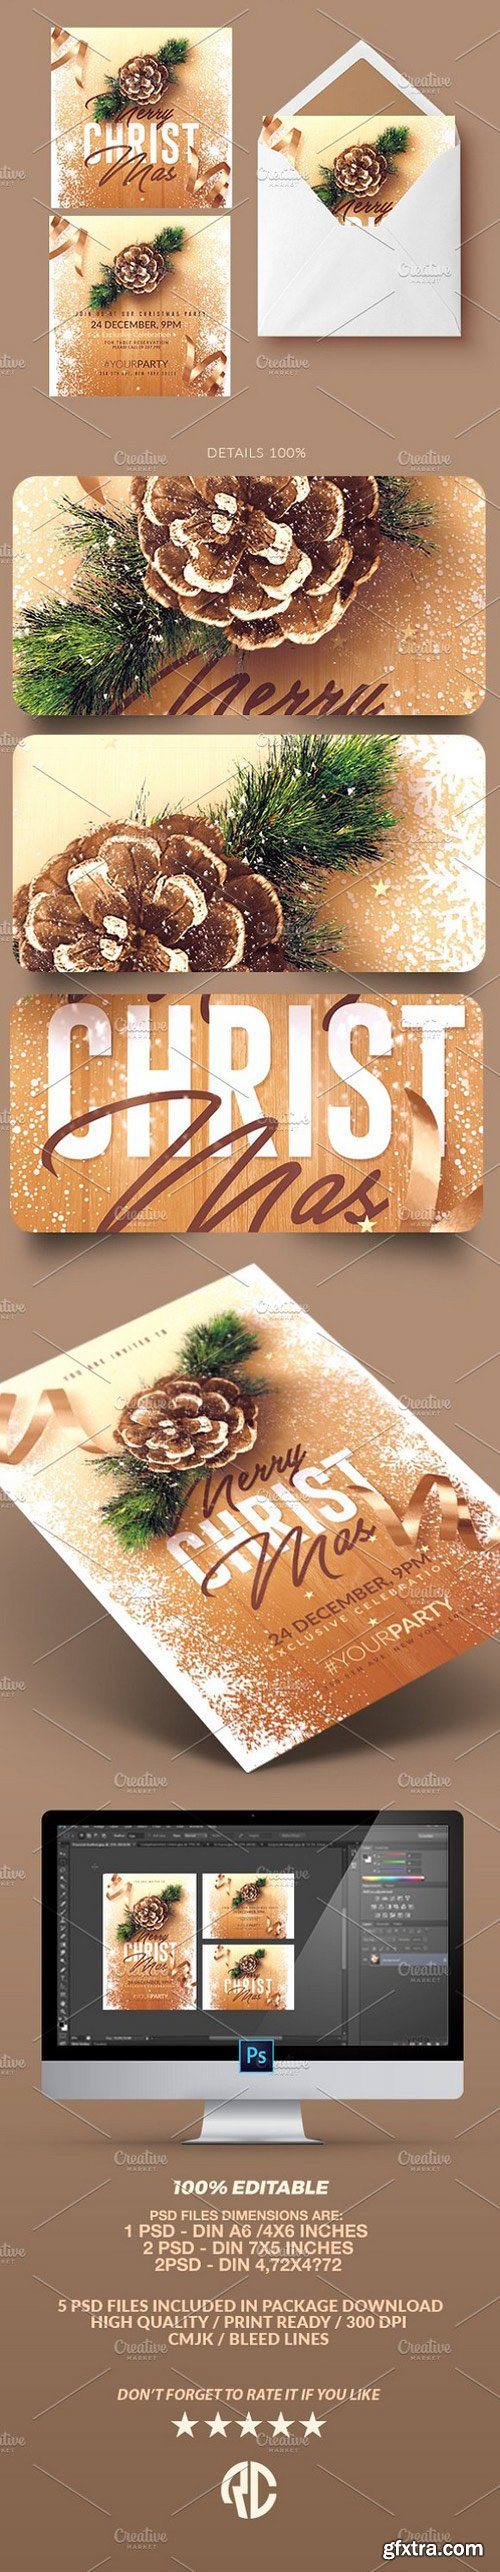 CM - Christmas Invitations - Psd Package 1068606